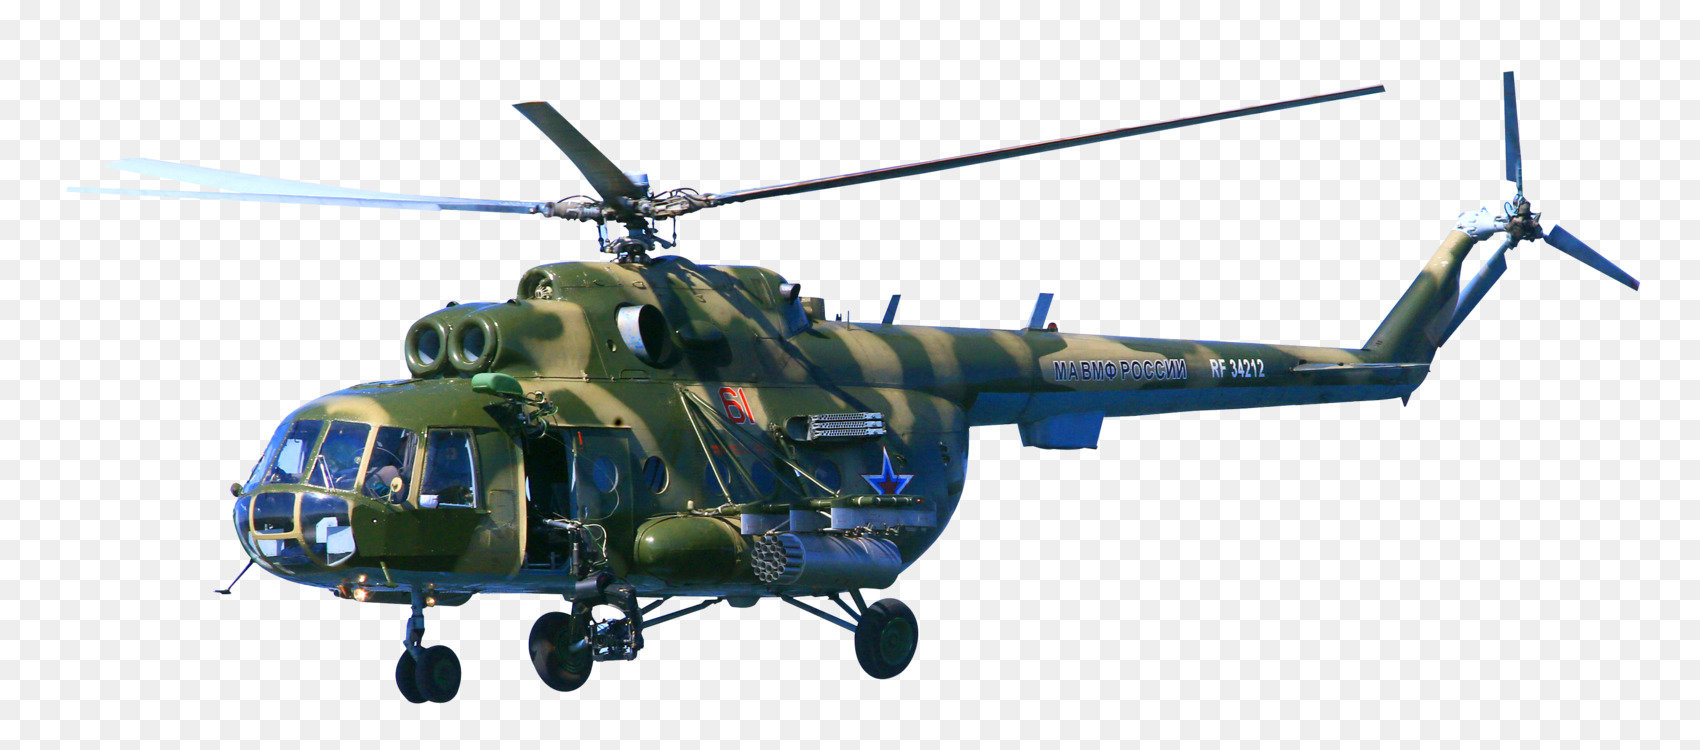 hight resolution of military helicopter boeing ah 64 apache agustawestland apache boeing ch 47 chinook